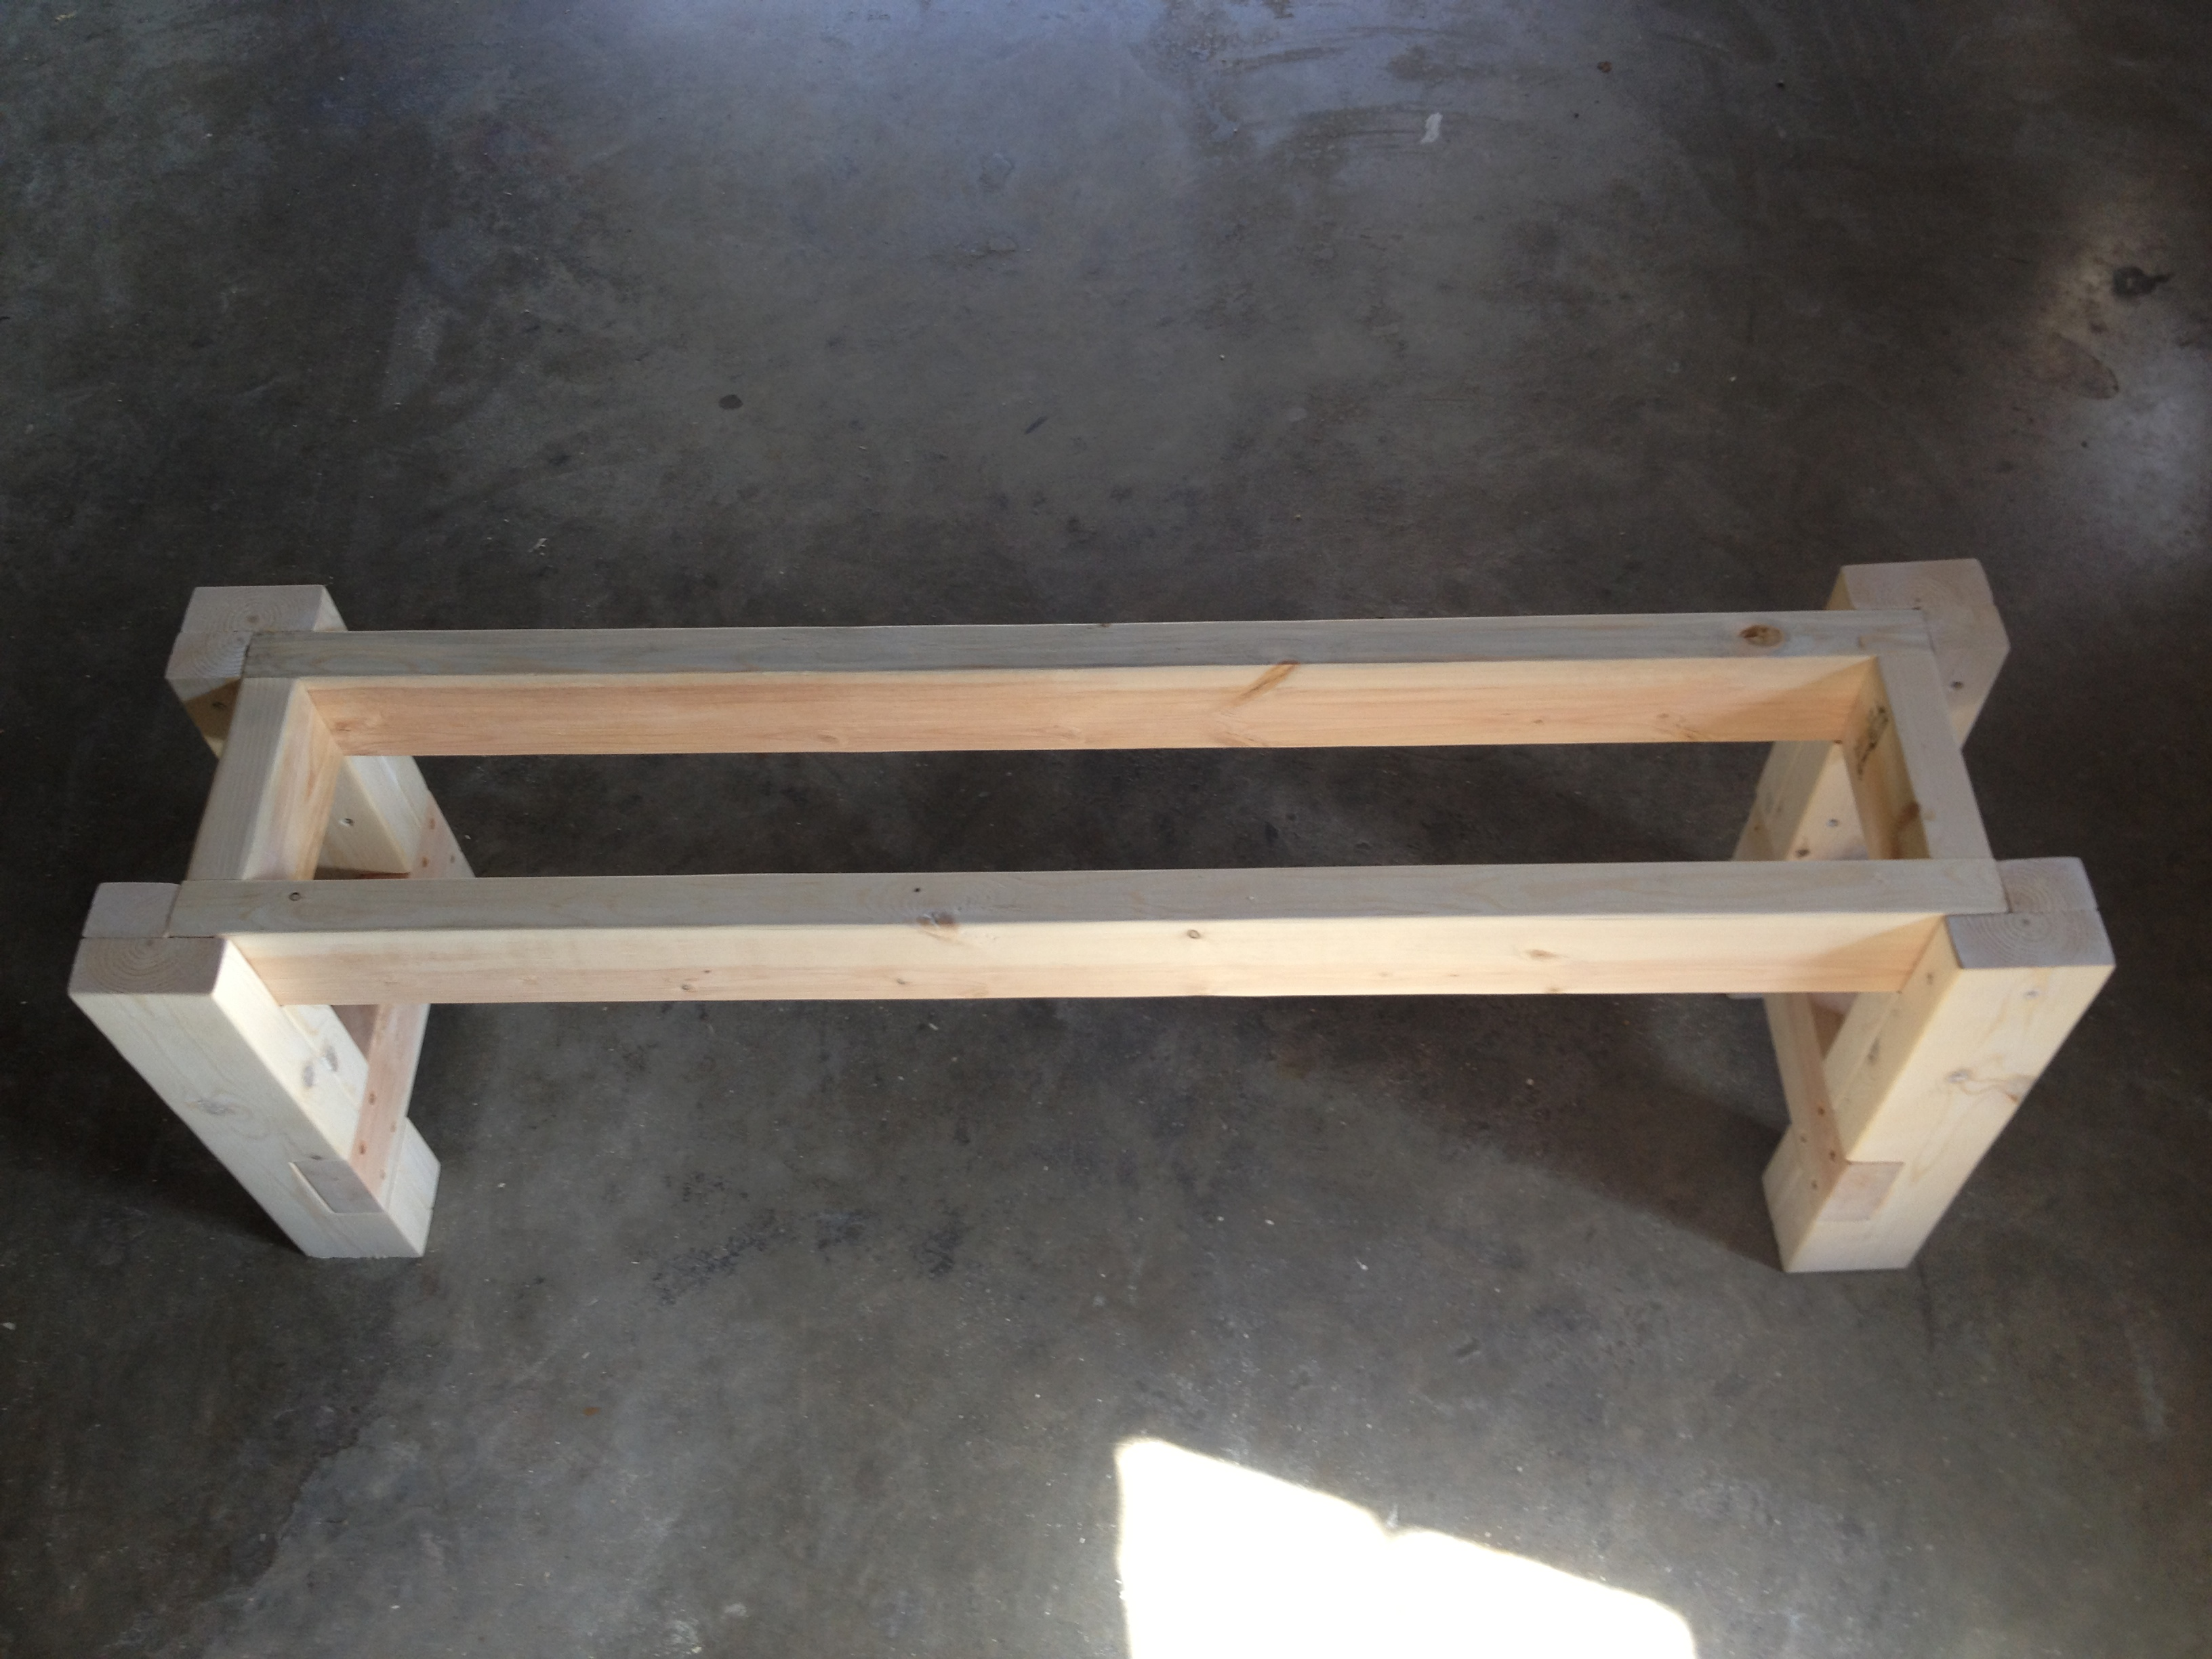 Free plans for making a rustic farmhouse table bench | A Lesson Learned